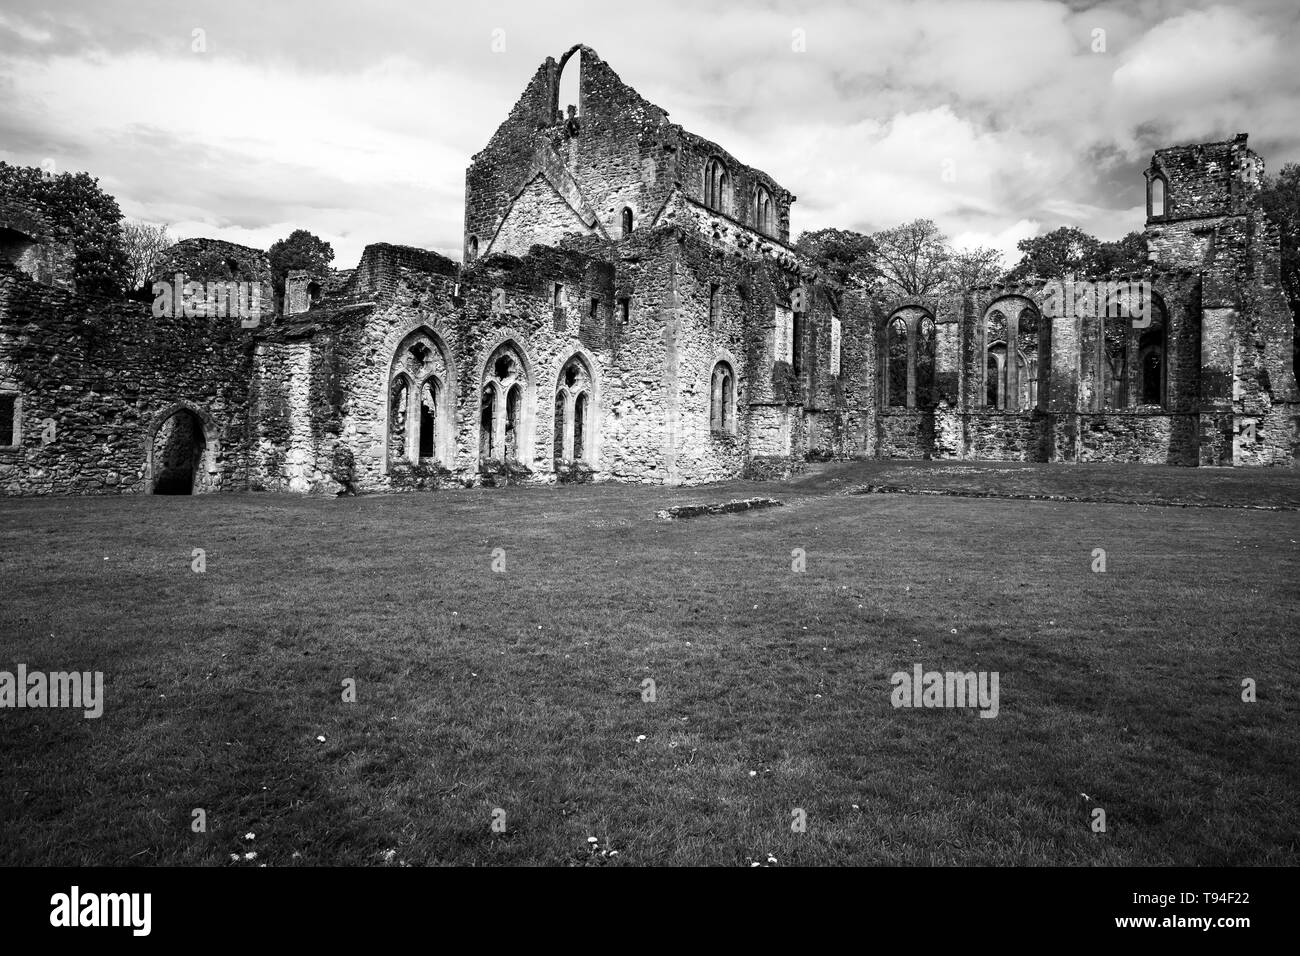 Black and White image of the ruined Cistercian Abbey at Netley, Southampton, UK which dates from the 13th century - Stock Image